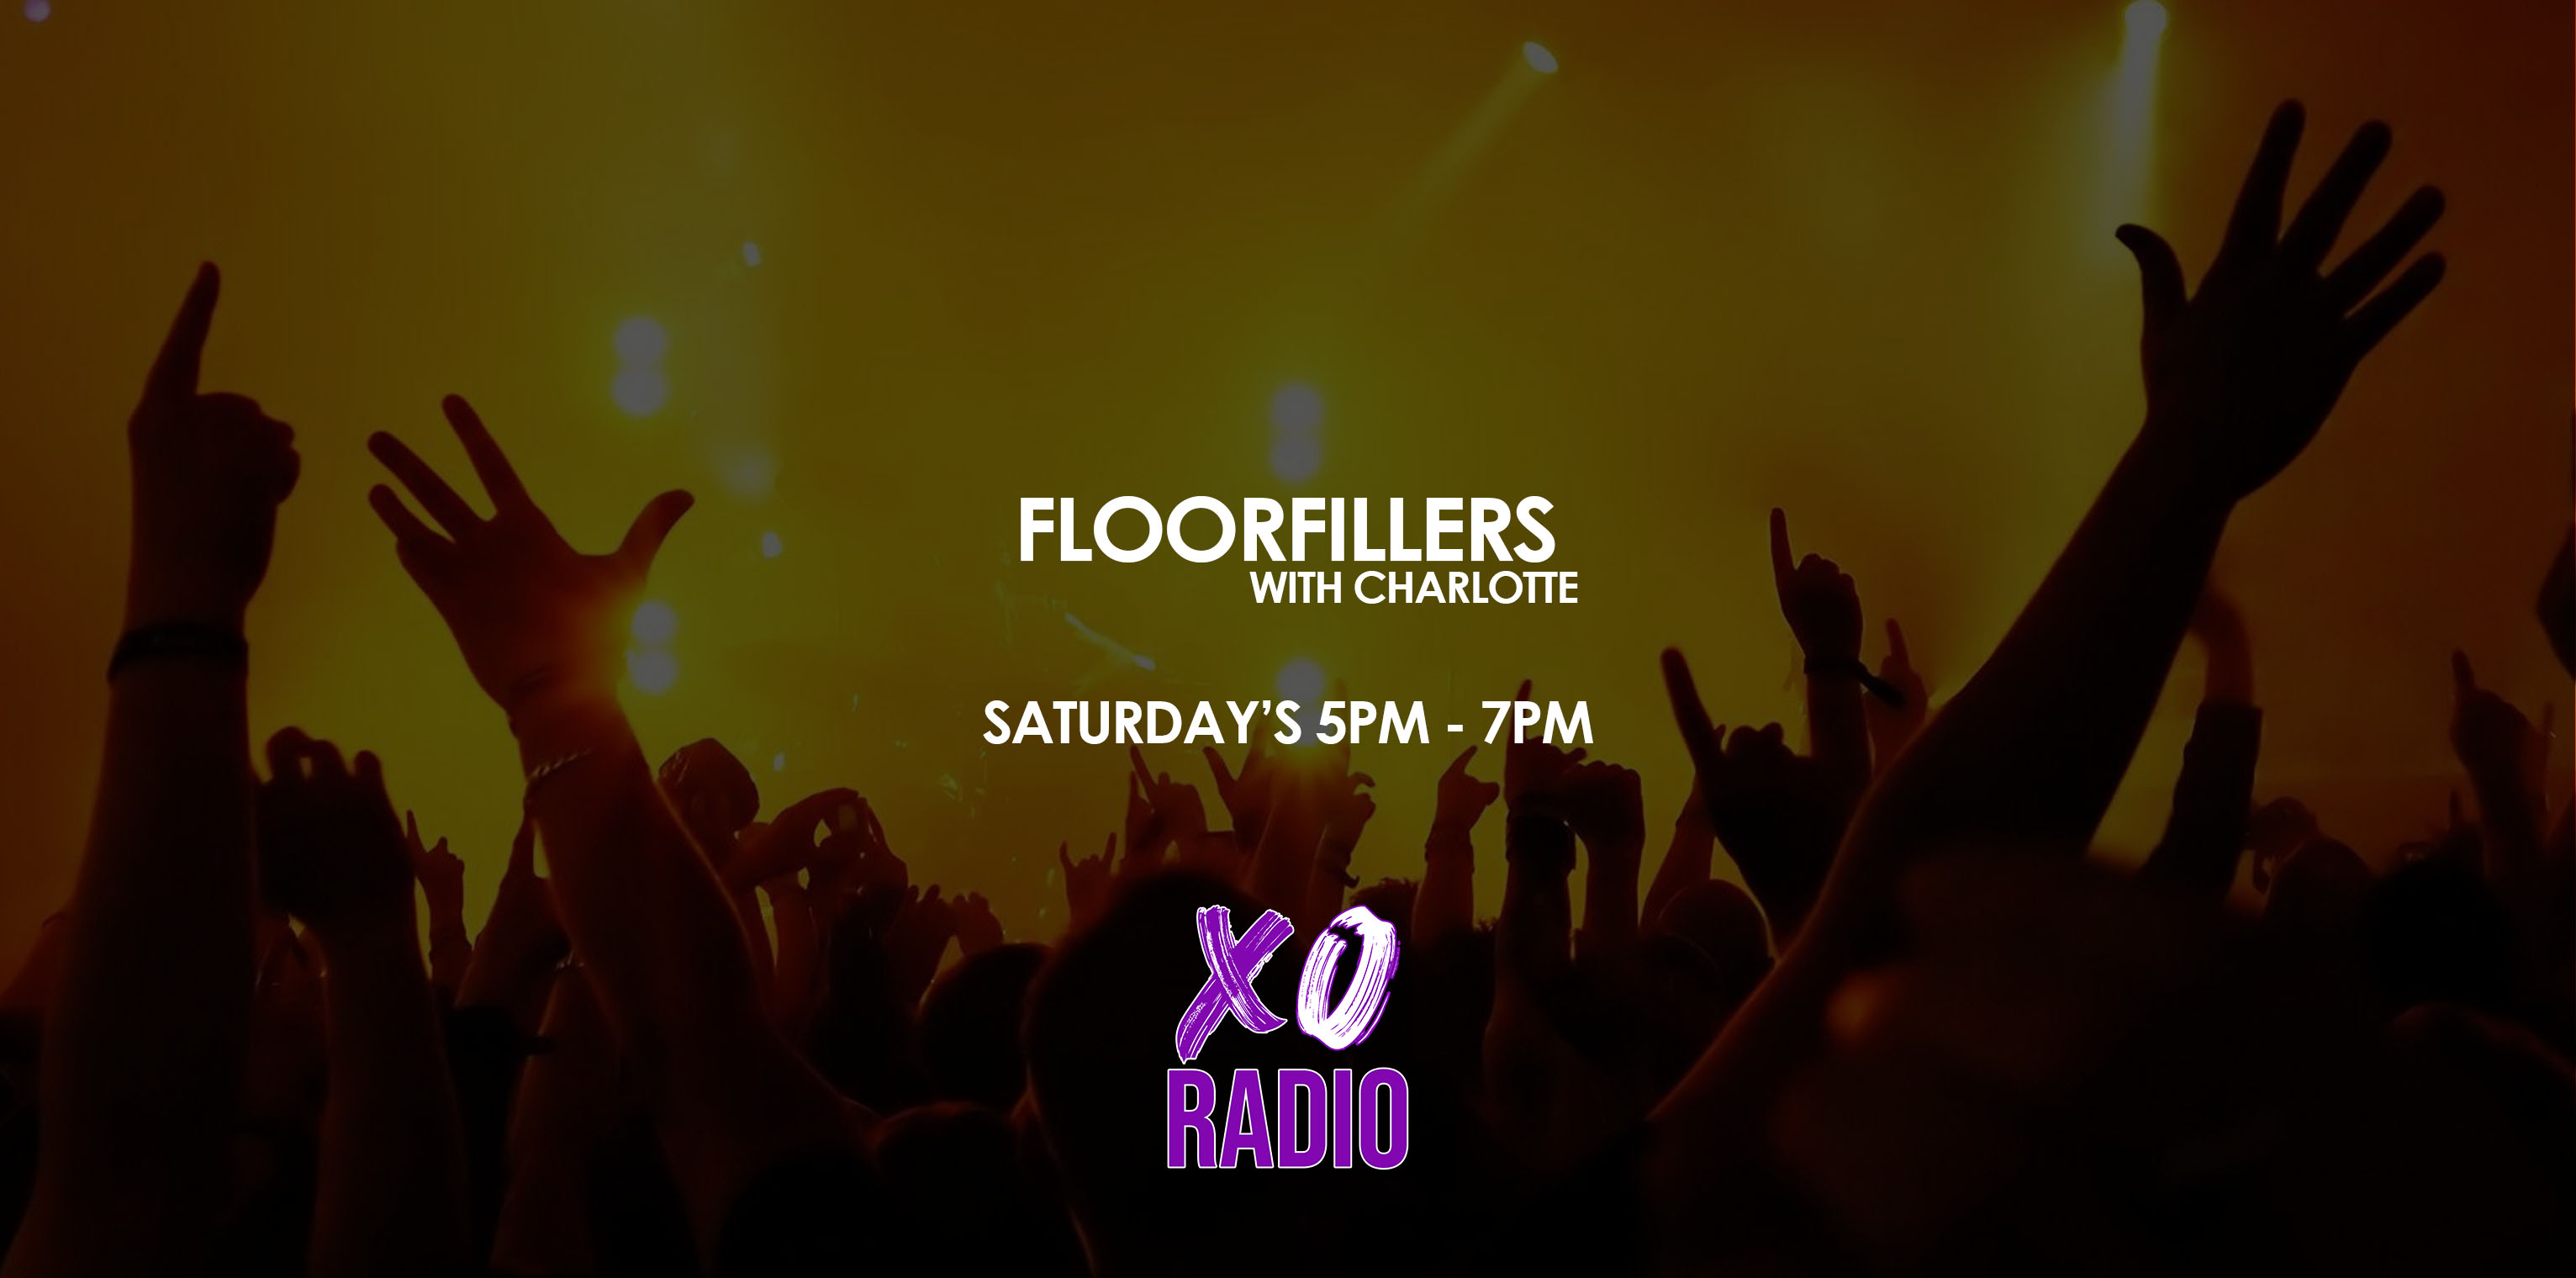 Floorfillers with Charlotte